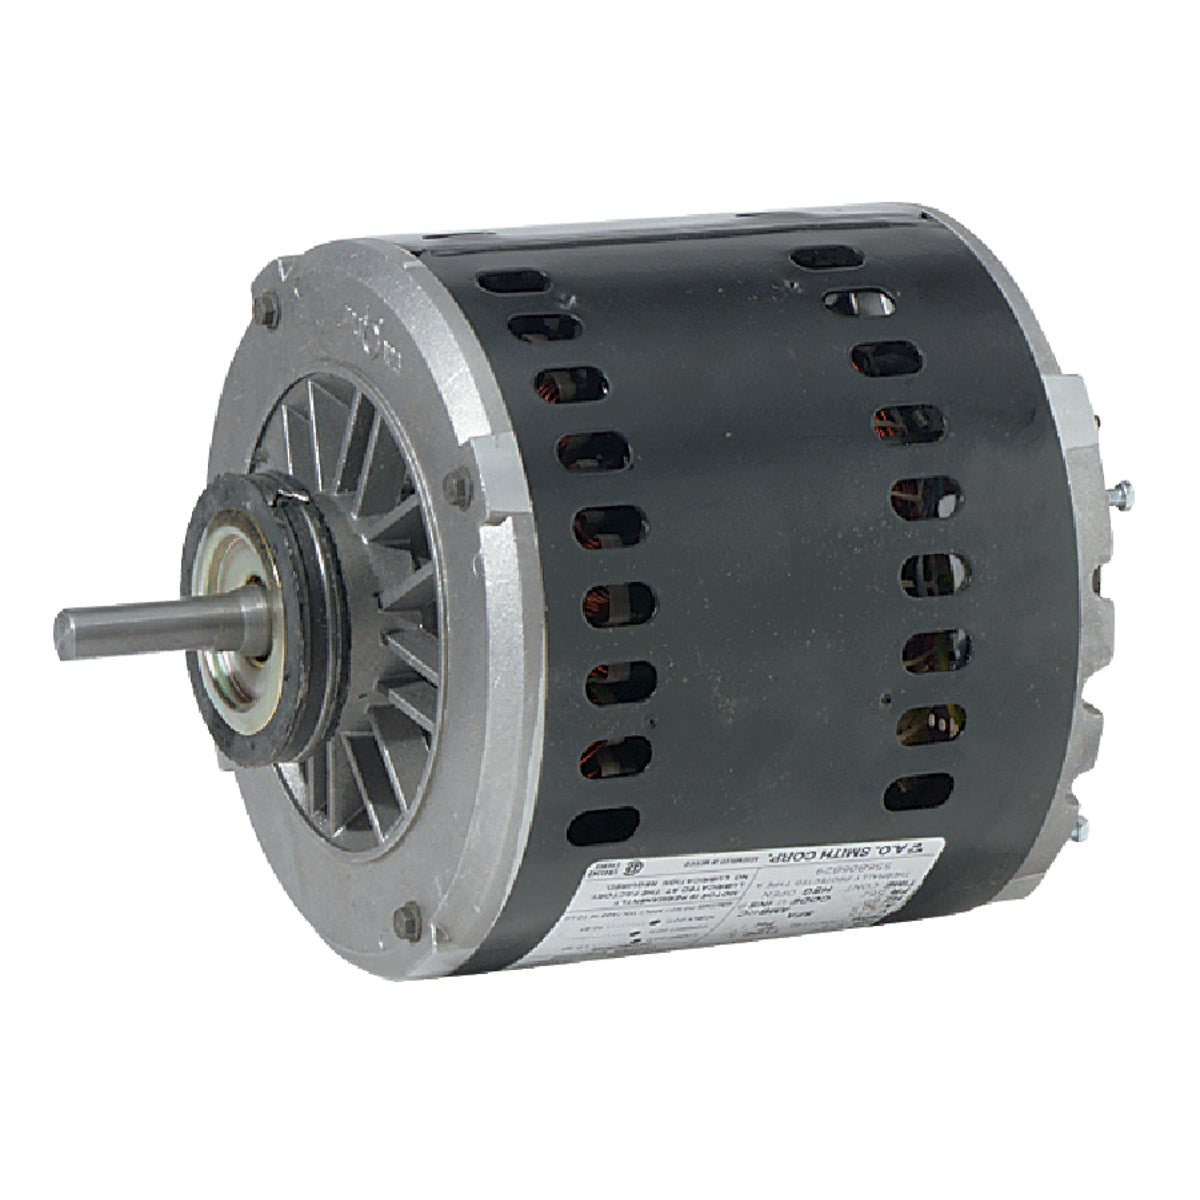 3/4HP 2 SPEED MOTOR